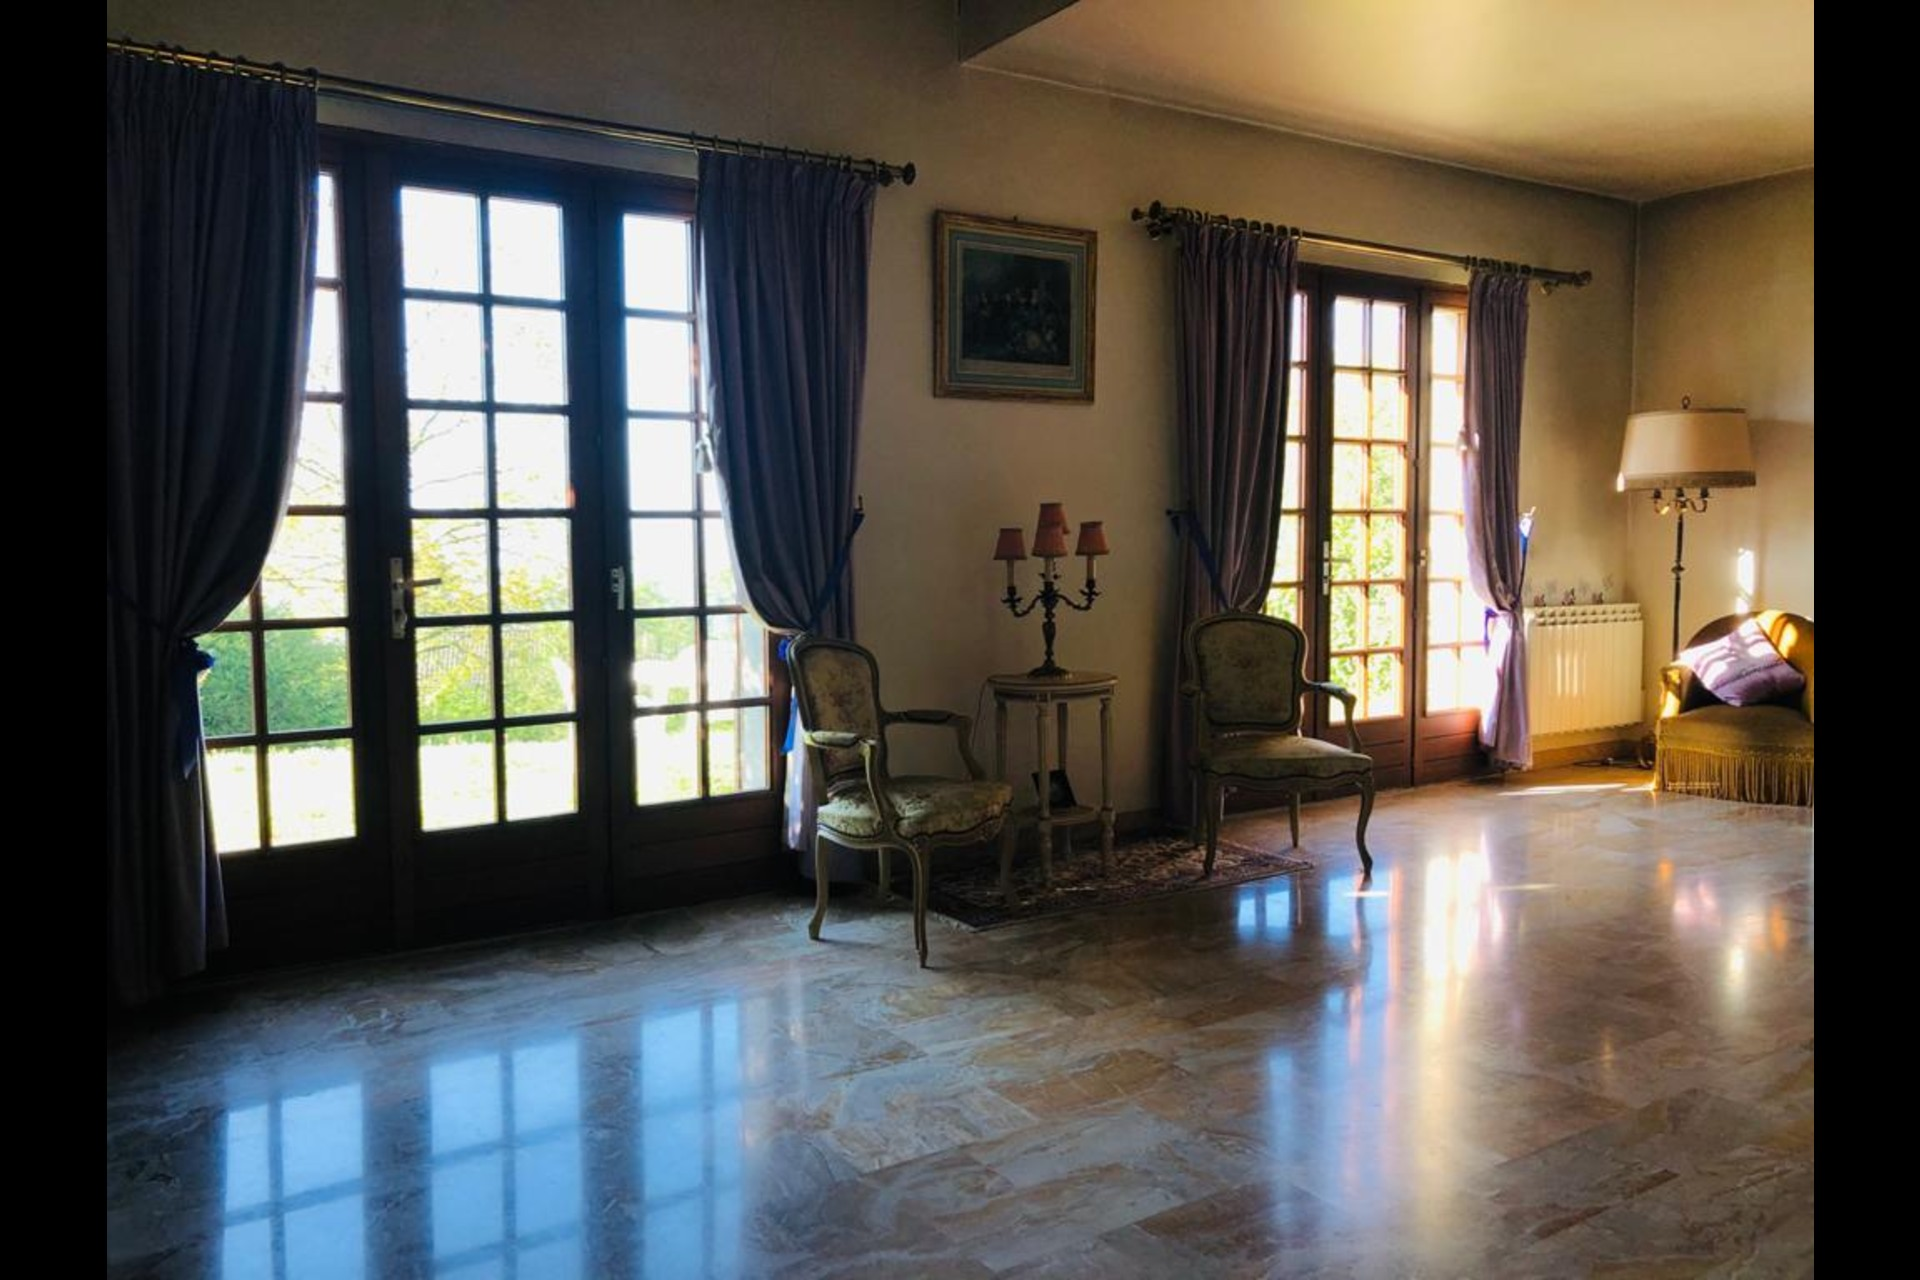 image 2 - House For sale feucherolles - 8 rooms